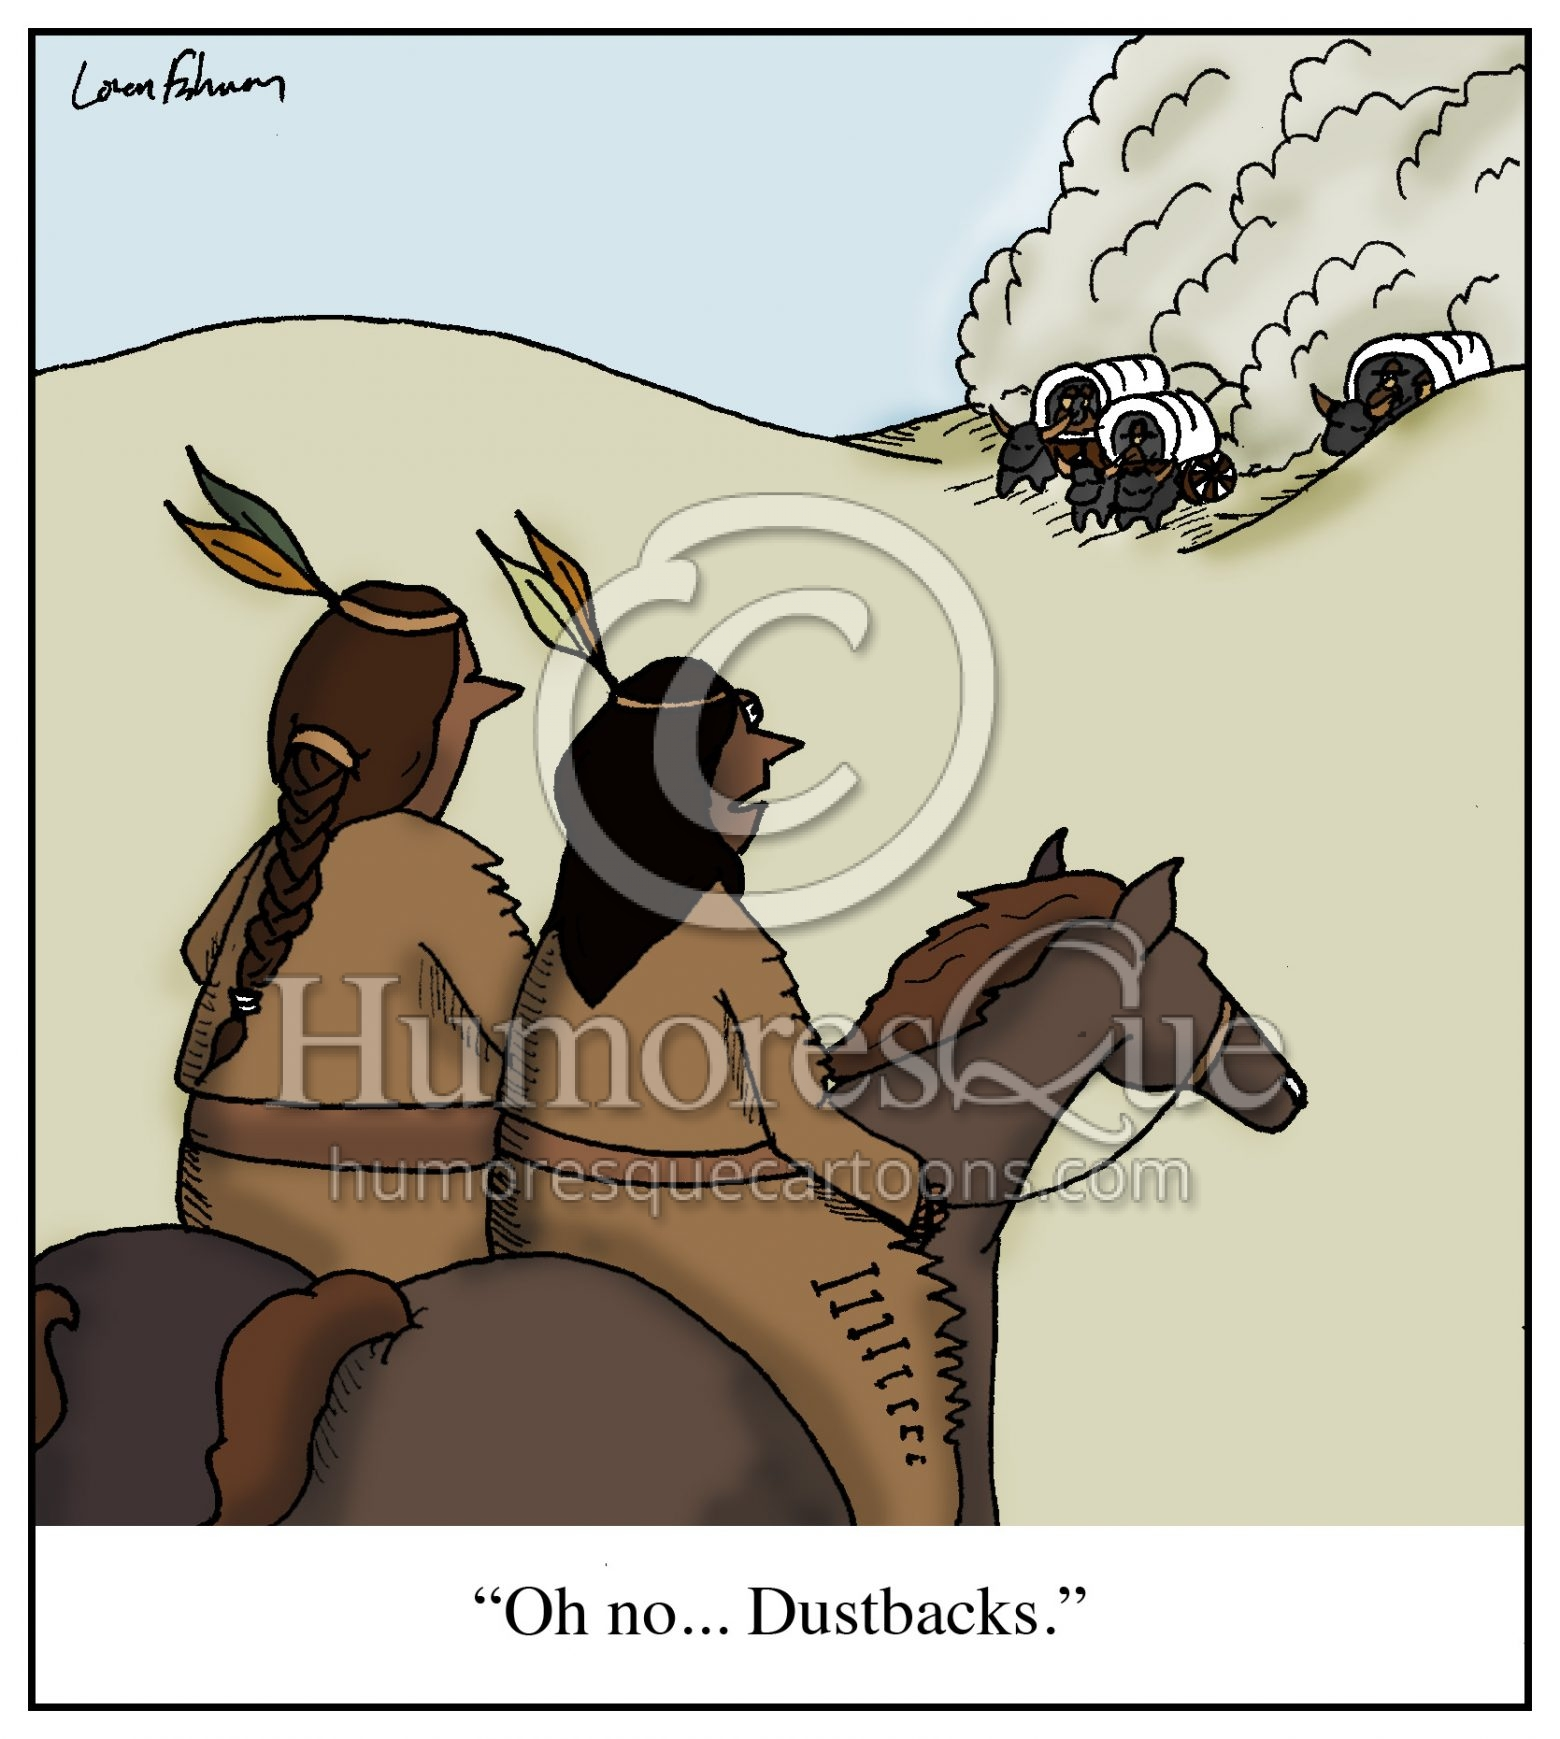 racism against native americans dustbacks cartoon